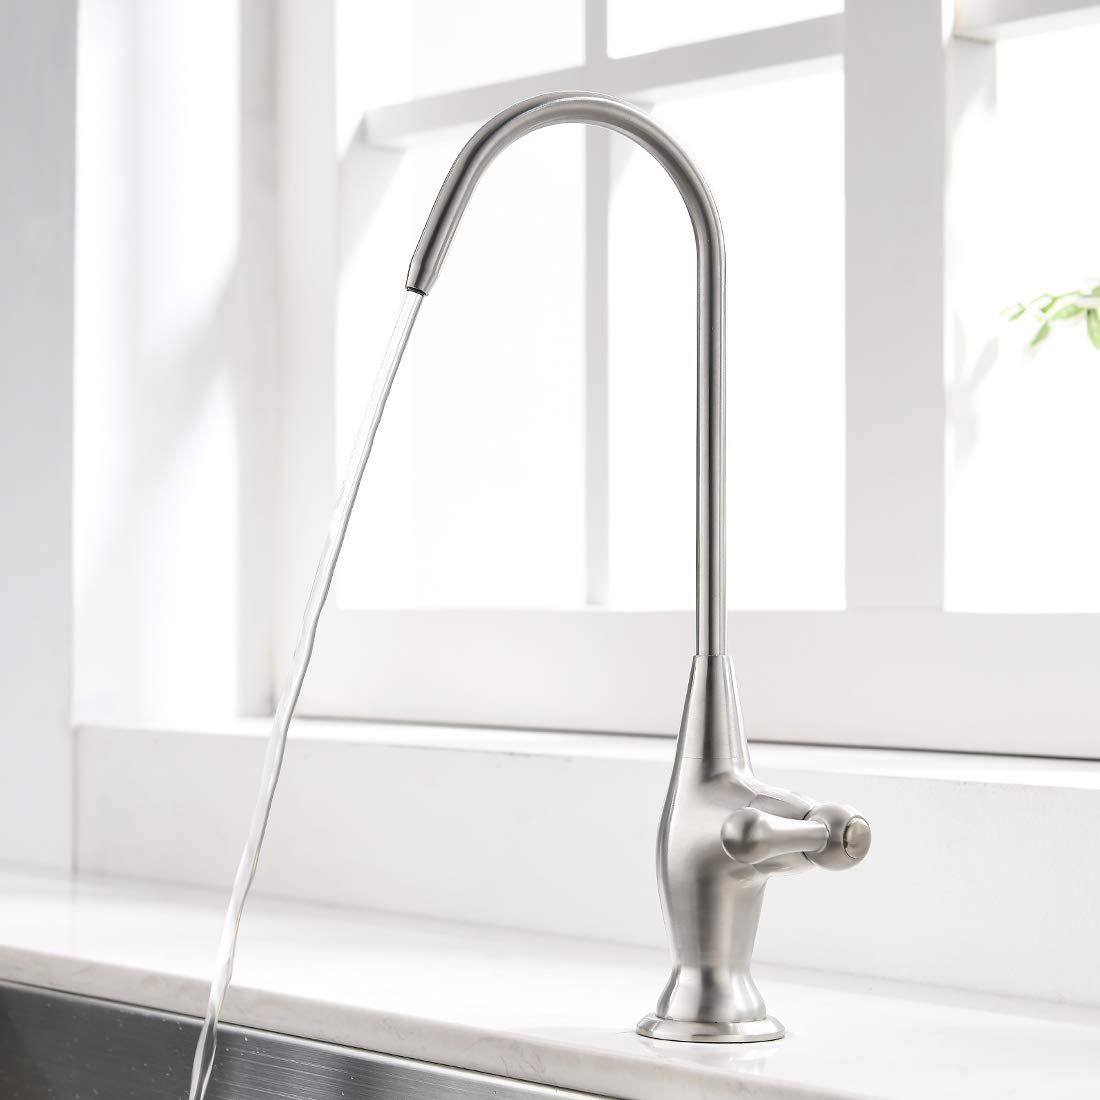 Modern Kitchen Water Filter Faucet Lead Free Water Filtration Faucet Co In 2020 Kitchen Faucet With Sprayer Kitchen Sink Faucets Stainless Steel Kitchen Sink Faucets